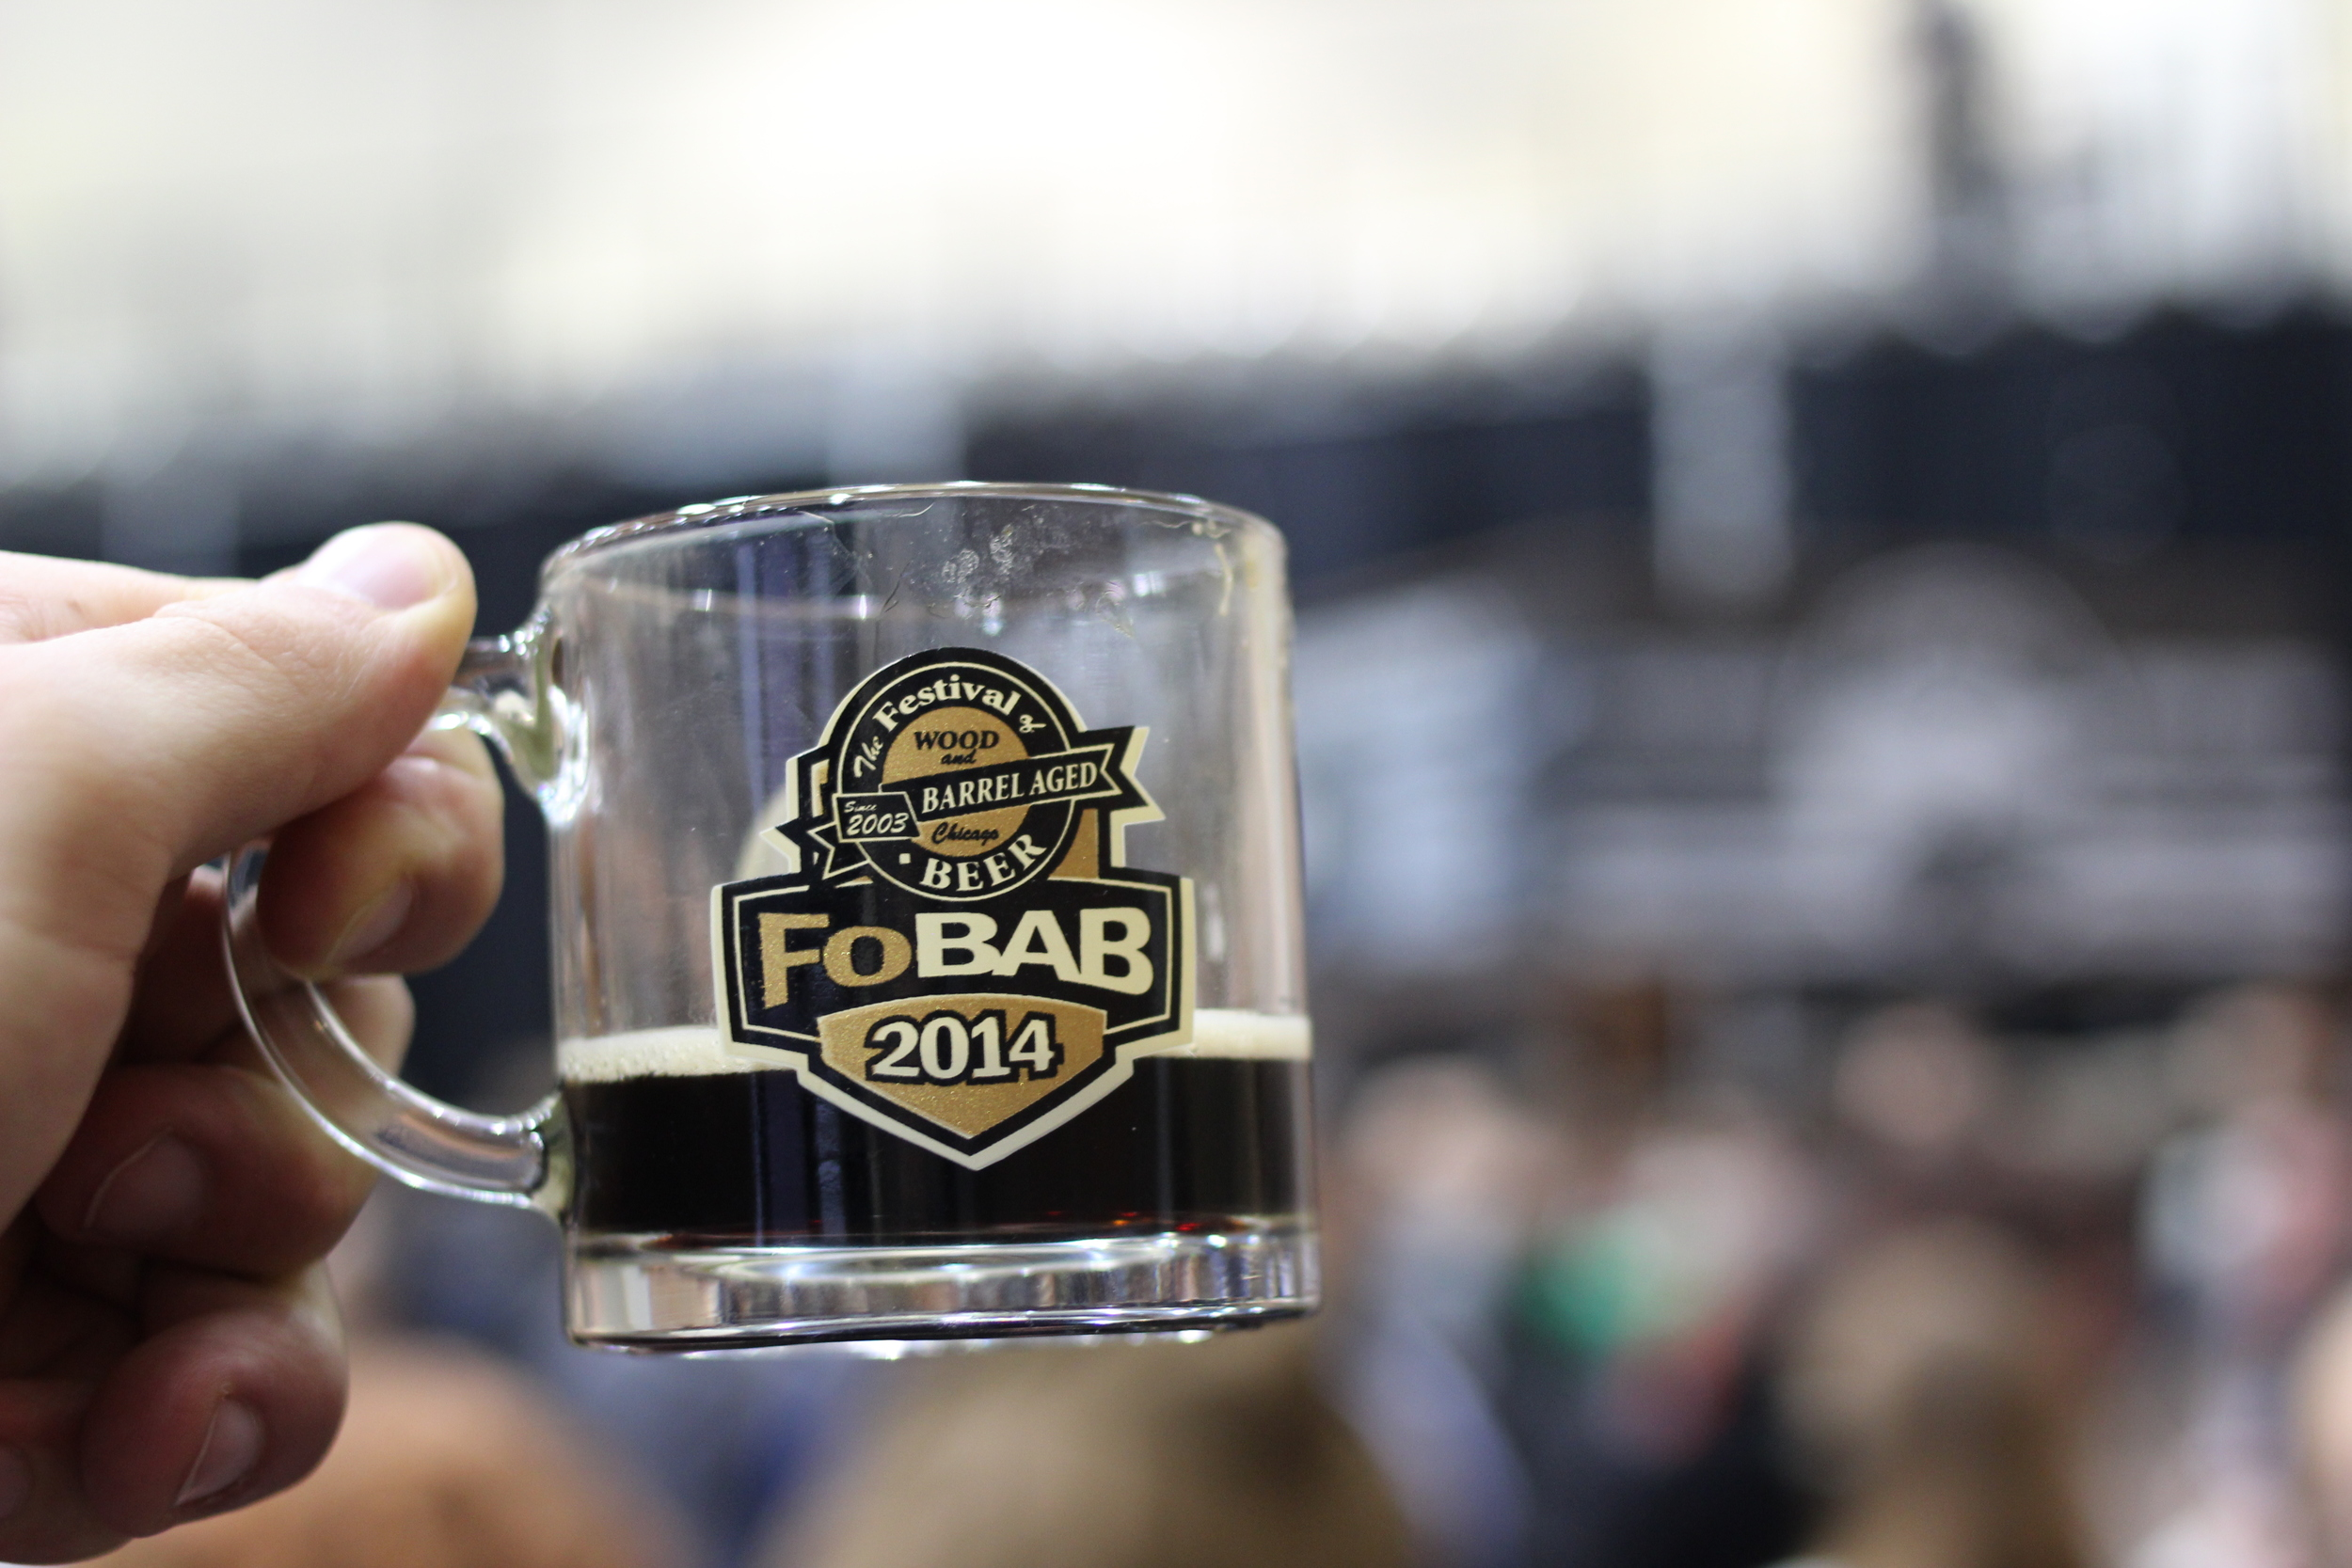 Our Top Beers from FoBAB 2014